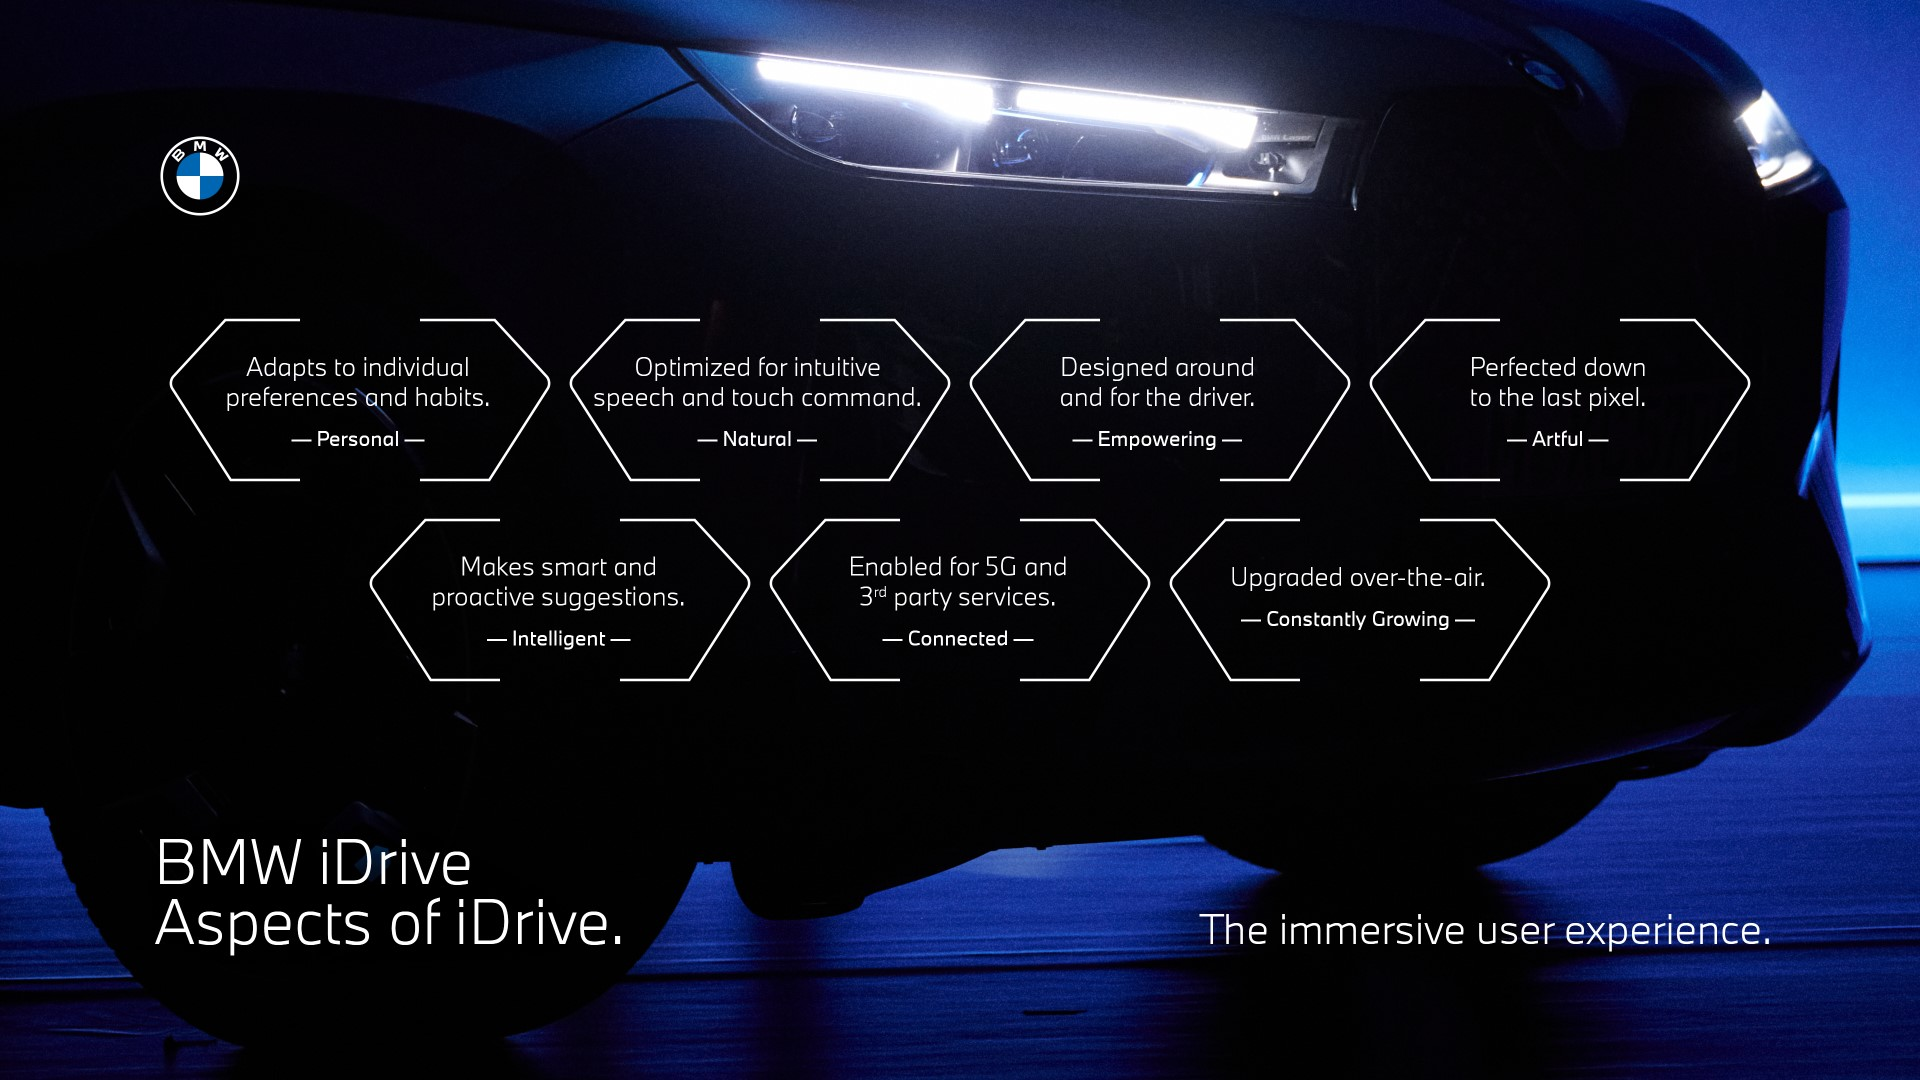 All-new BMW iDrive system